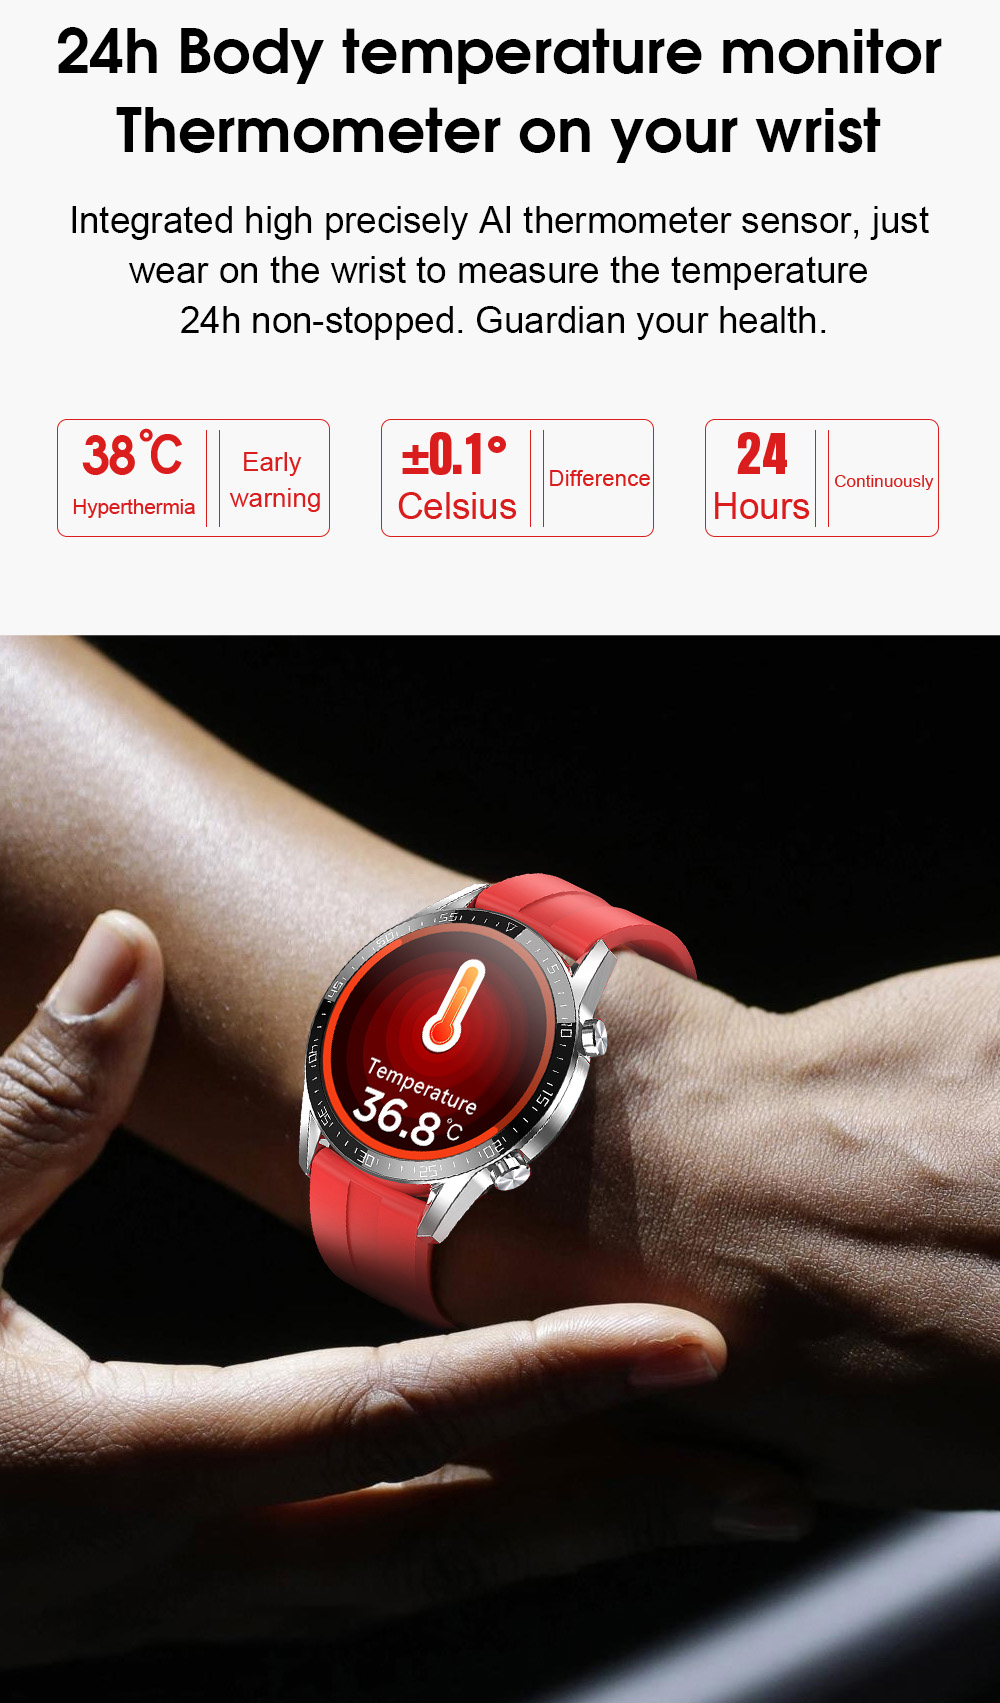 Hf4923918068e4692a74c9379a94cc4eaI Timewolf IP68 Smart Watch Men Android 2020 Full Touch Smartwatch Men Women Smart Watch For Huawei Xiaomi Apple IOS Android Phone